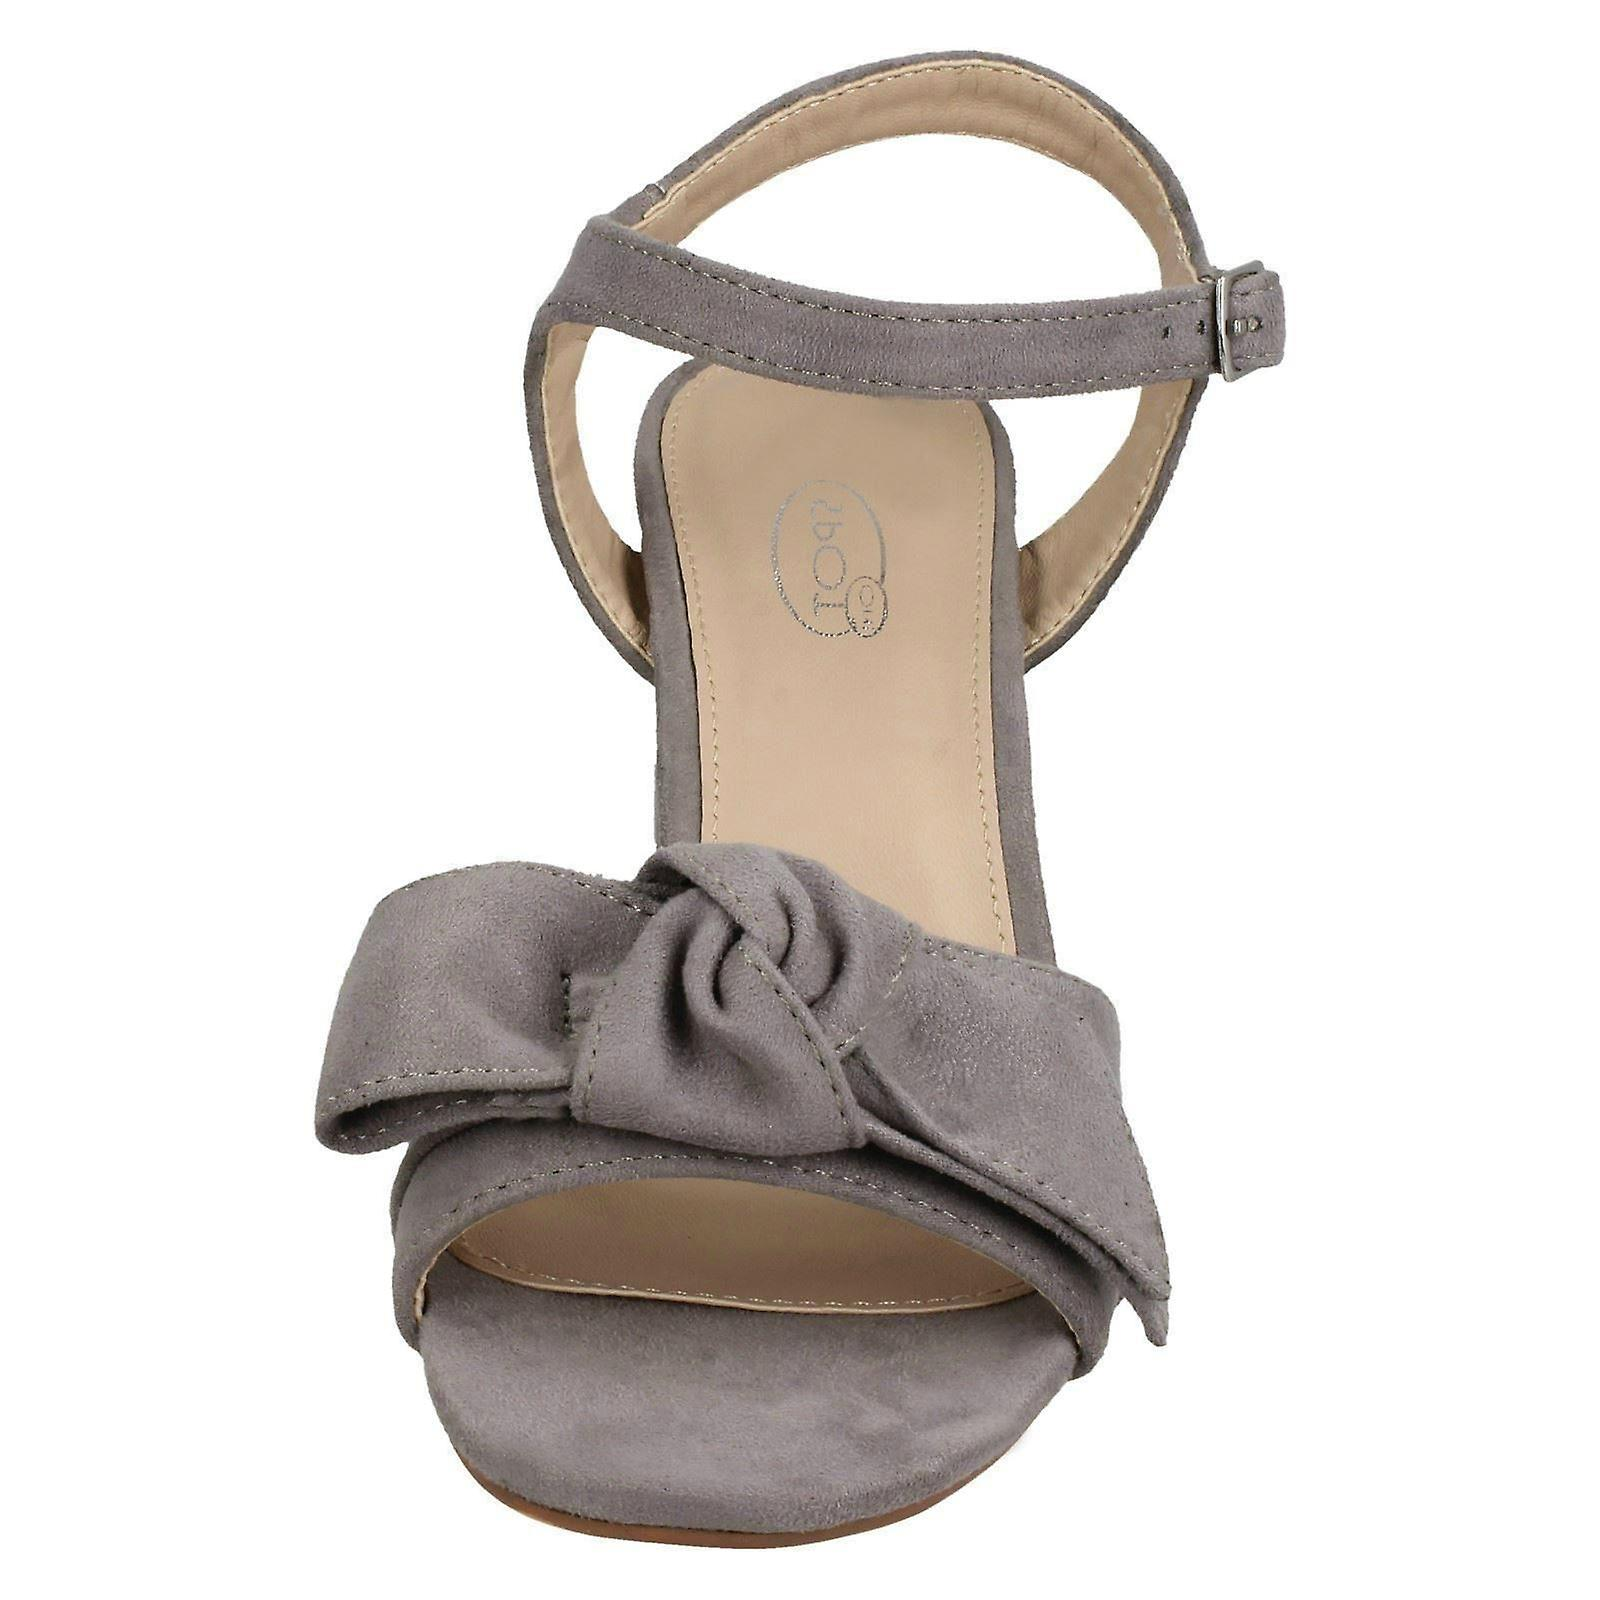 F10840 Size Blocked 41 EU Size UK Size Grey Heel On Sandals 10 US 8 Spot Microfibre Ladies xZCwOqXZ